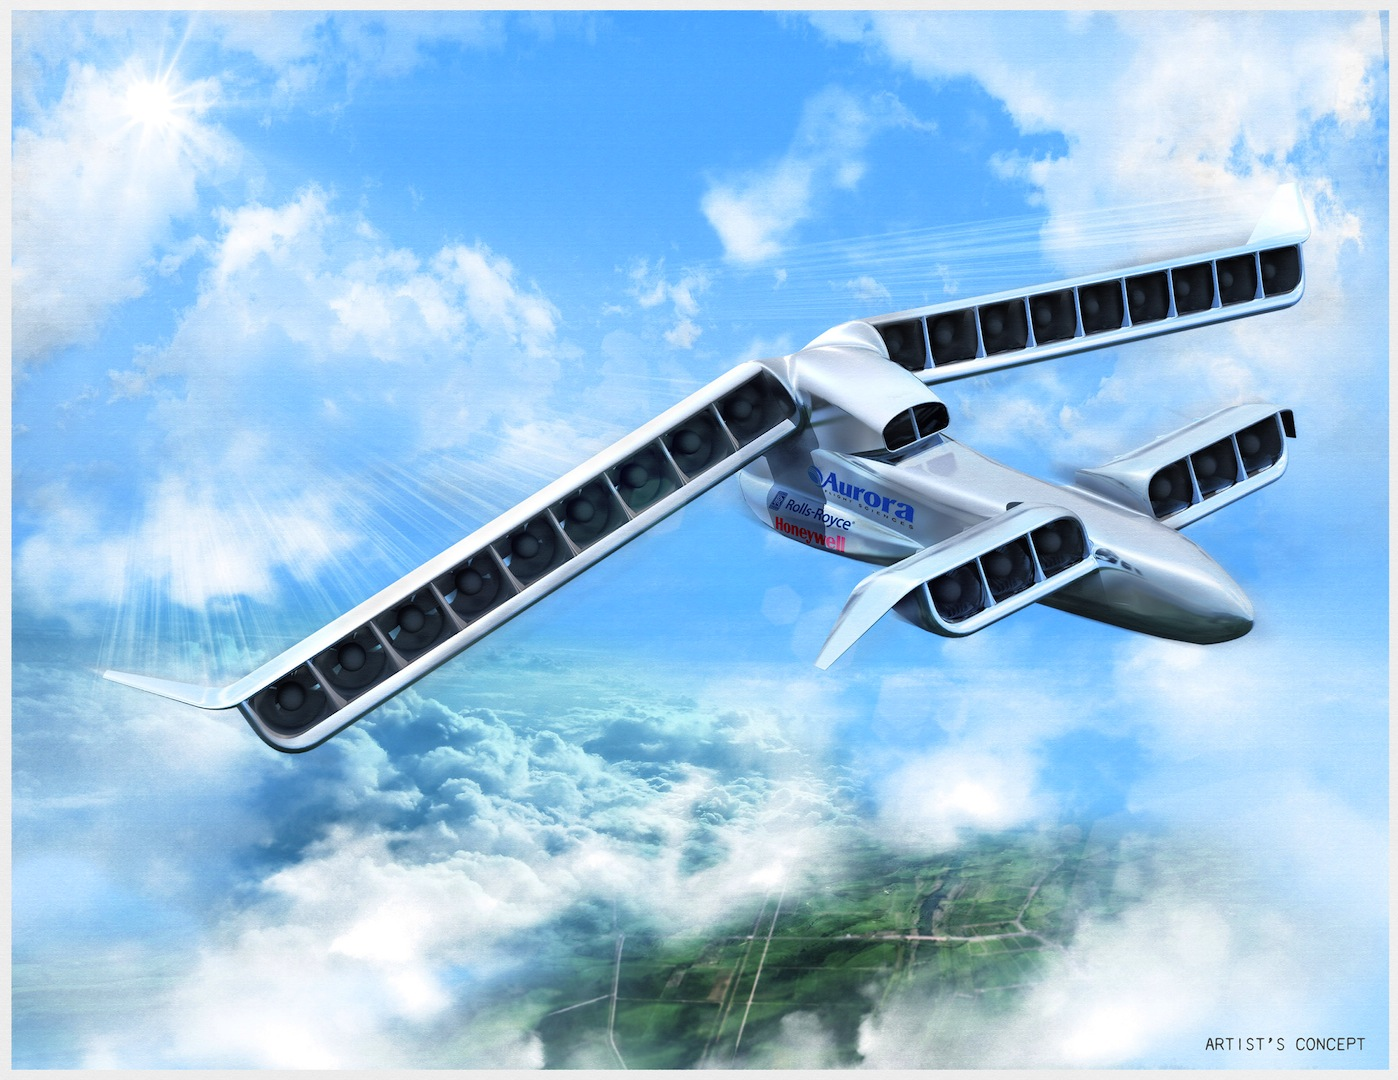 Aurora Wins Darpa Contract To Build Novel Drone